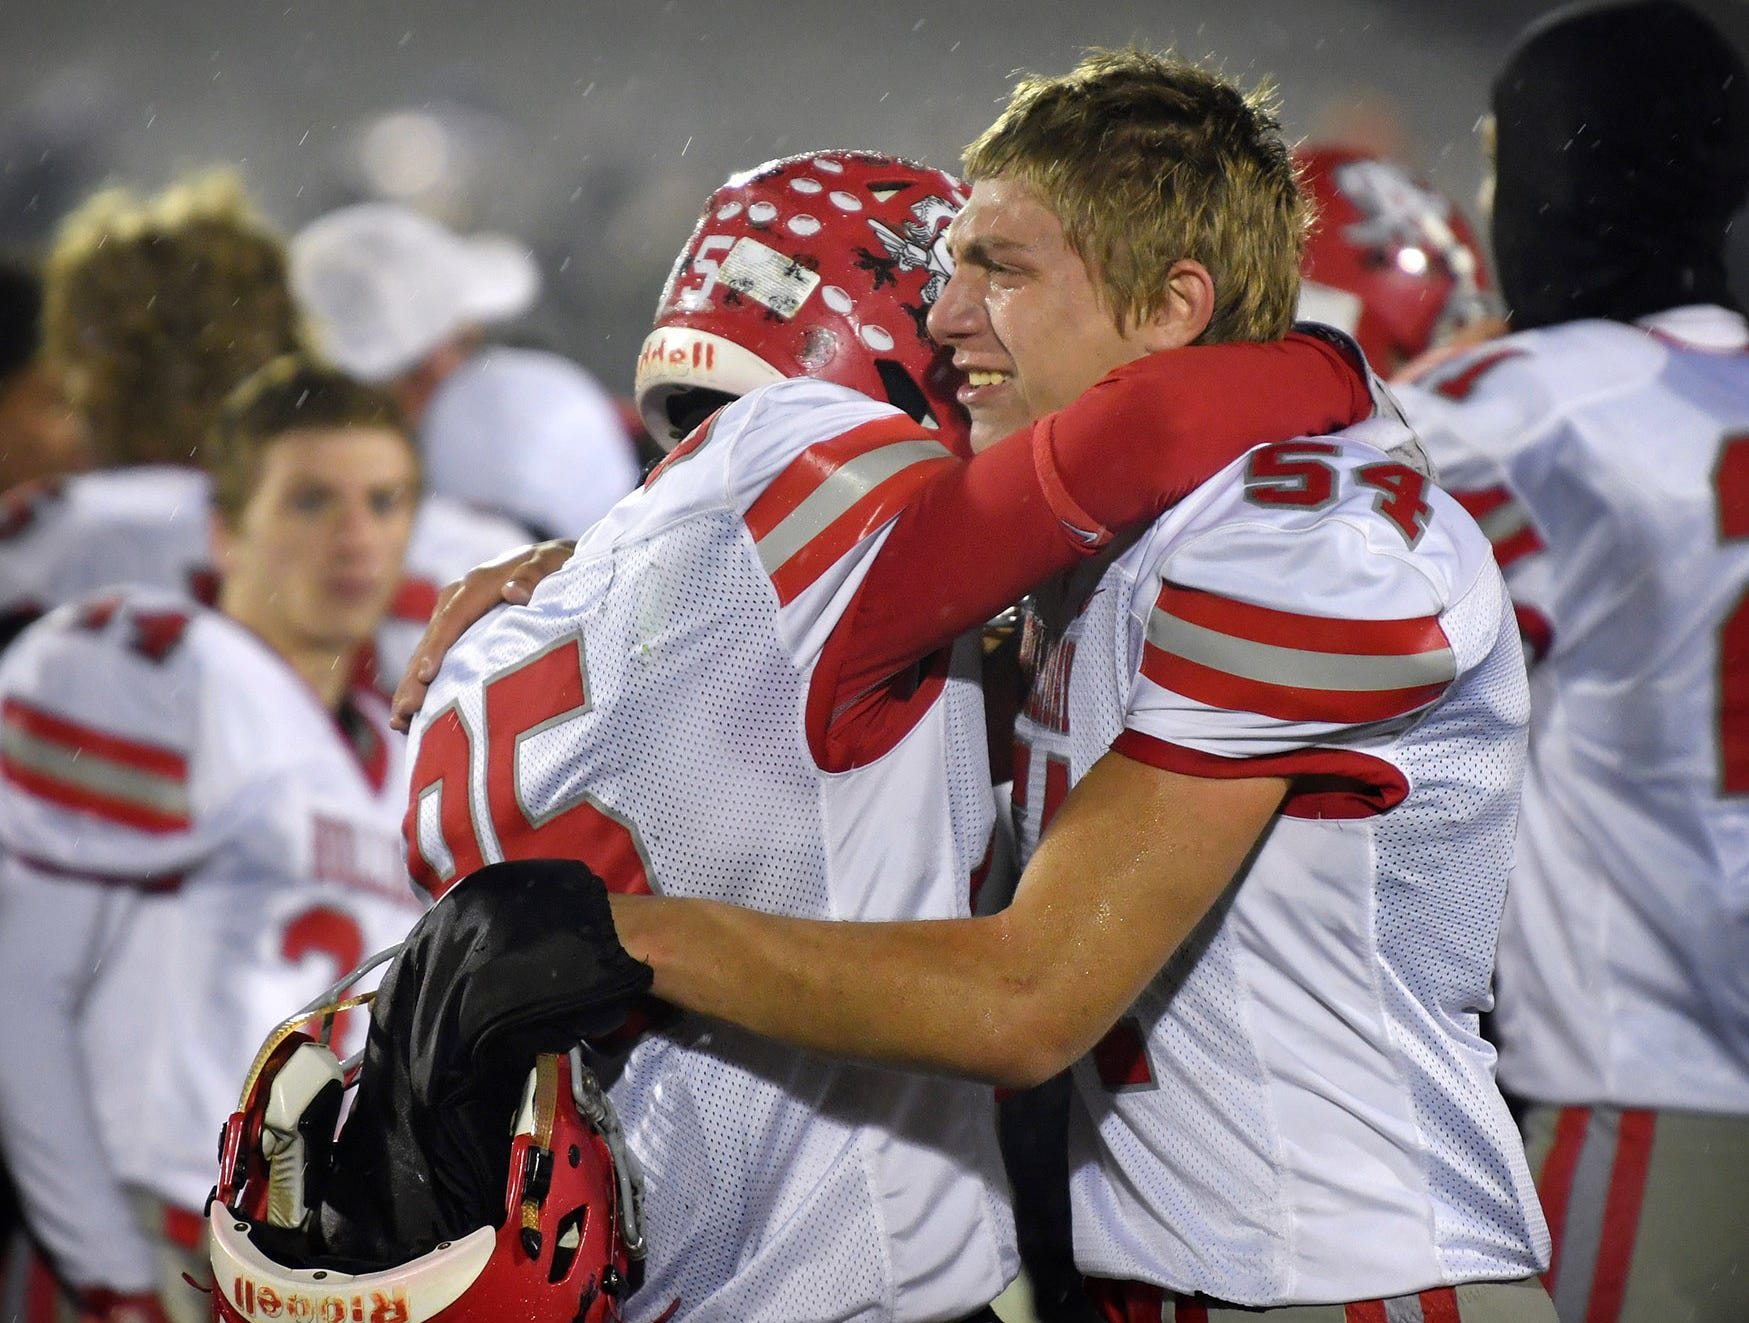 Nathan Sheen (85) and John Paul Menasco (54) console each other after the Holliday Eagles lost to the Gunter Tigers in the state quarterfinal game Friday night in Denison. Gunter won, 27-6.